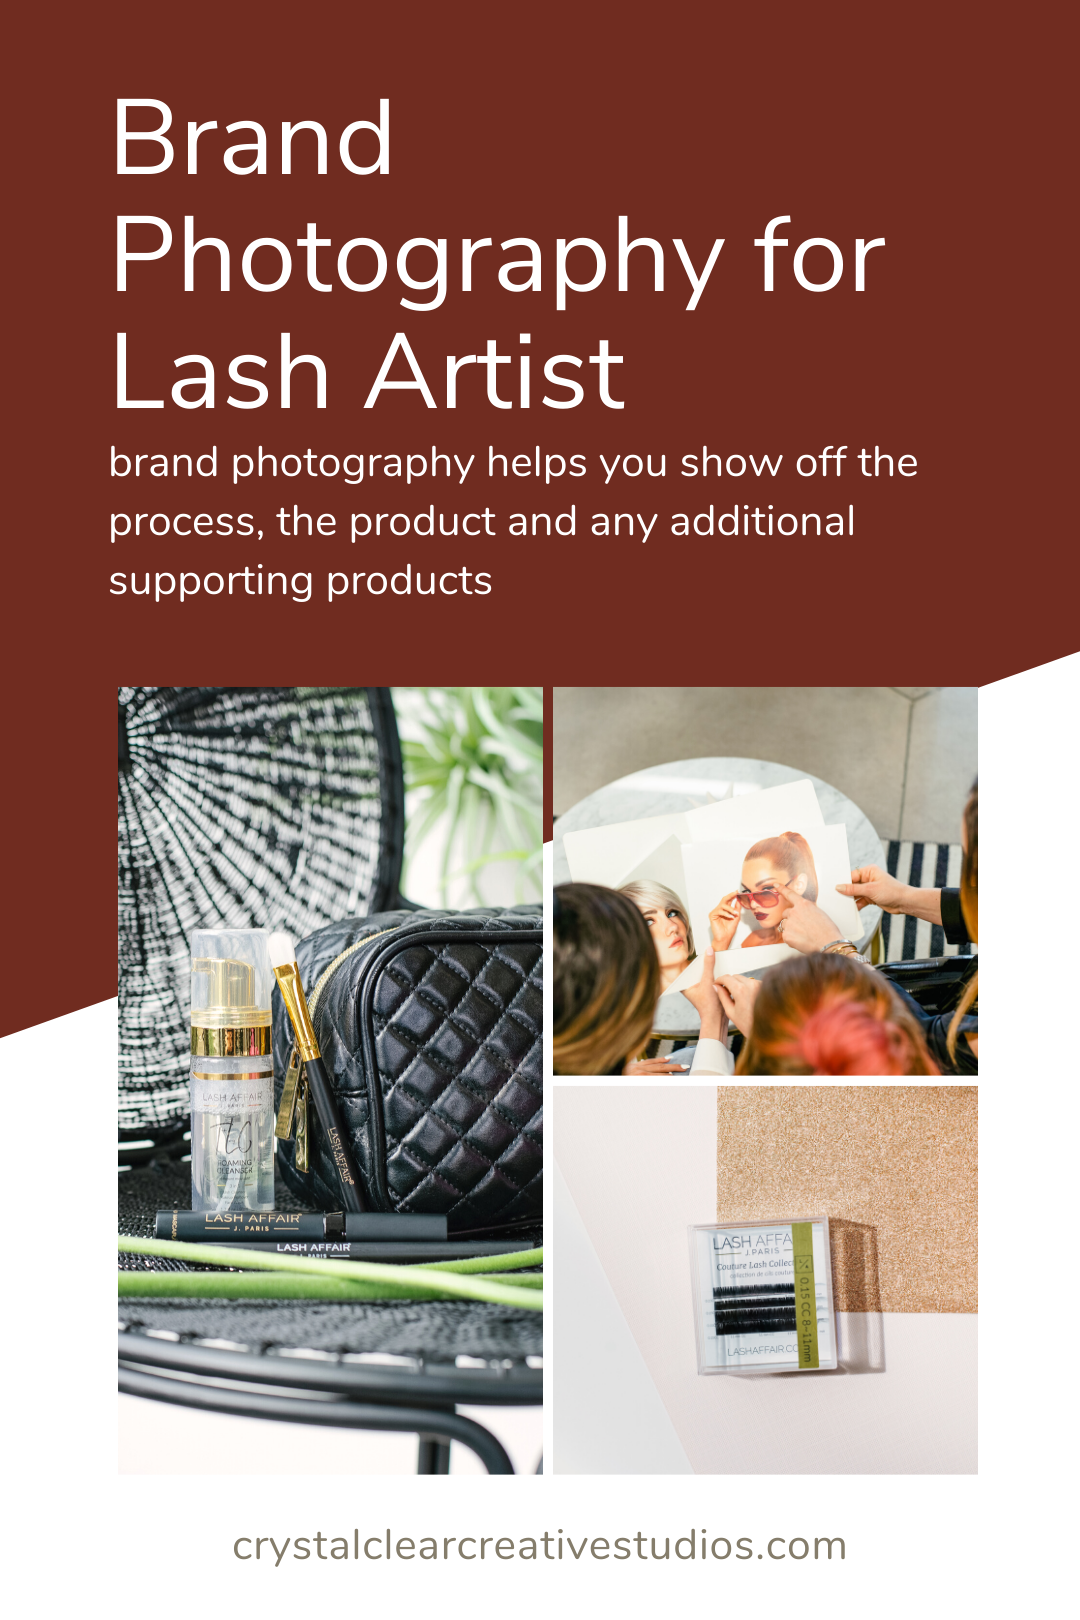 Brand Photography for Lash Artists